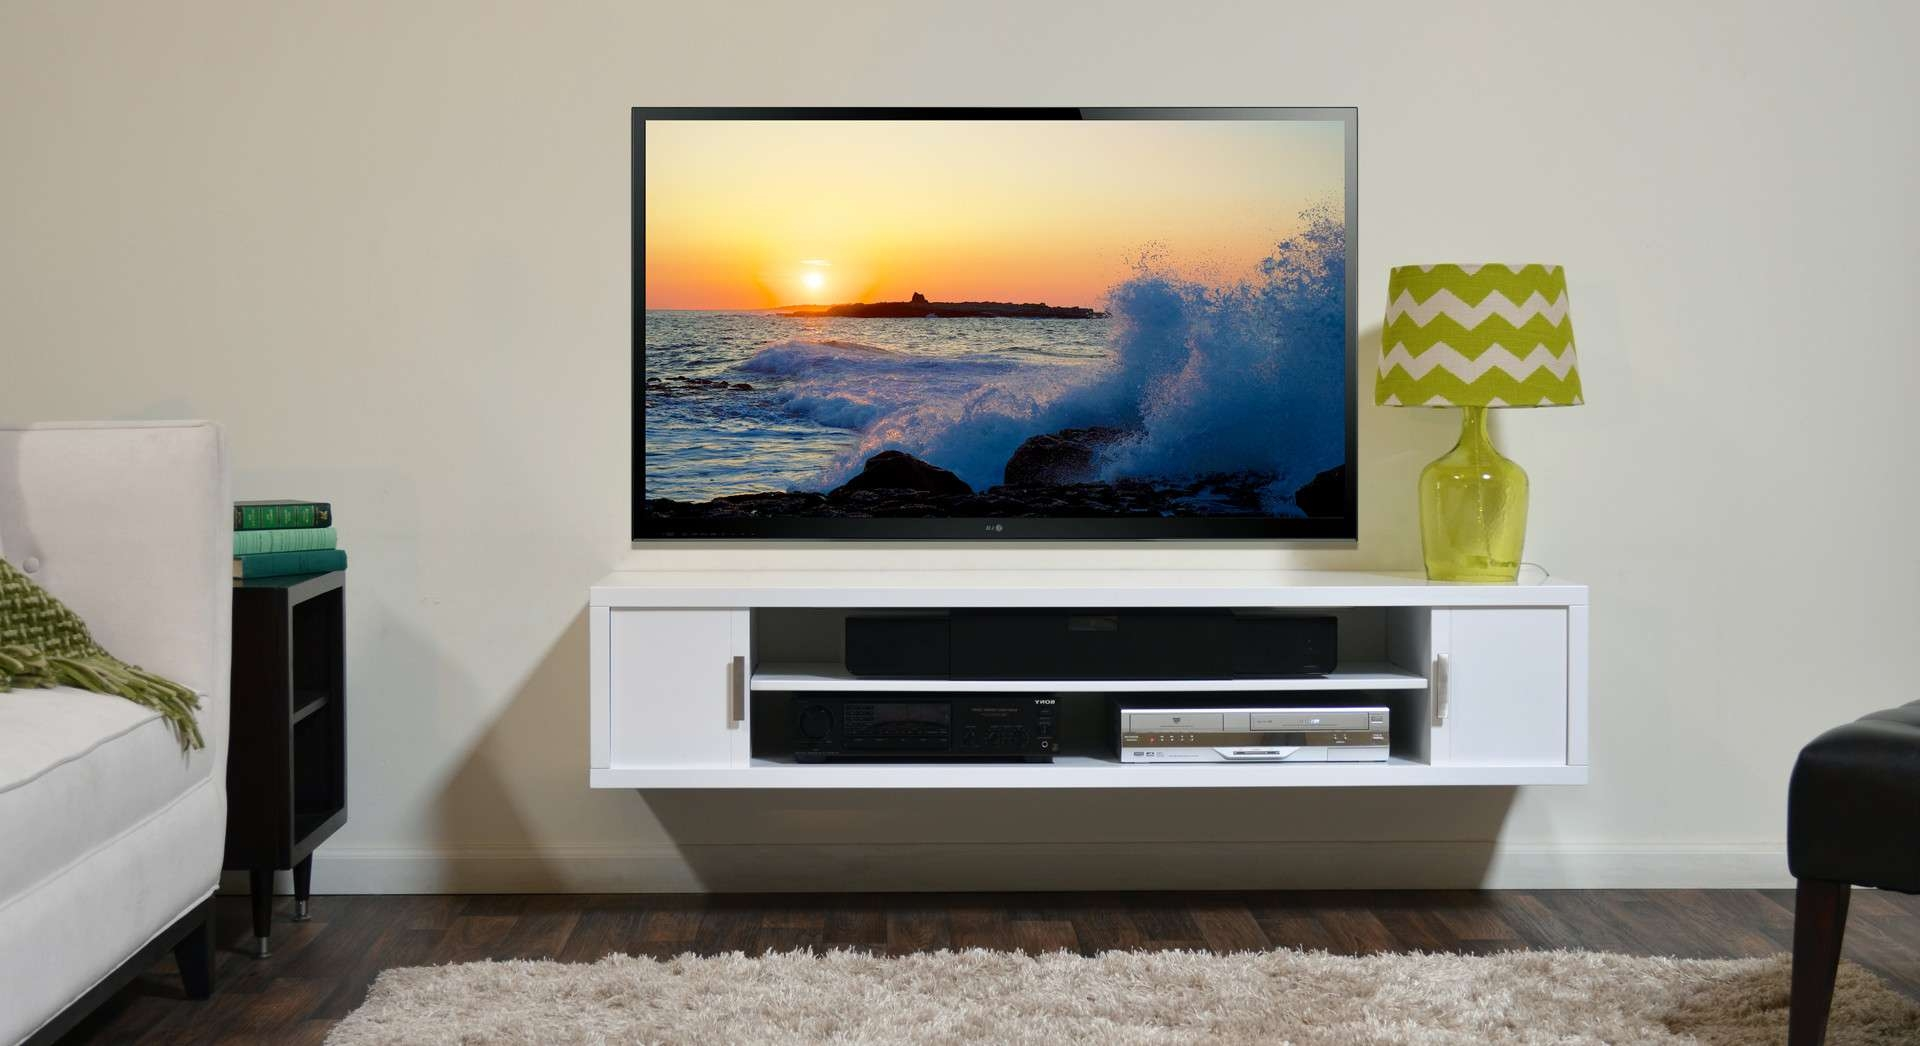 To Wall Mounted Tv Stand – Home Designing With Regard To Modern Wall Mount Tv Stands (View 8 of 15)